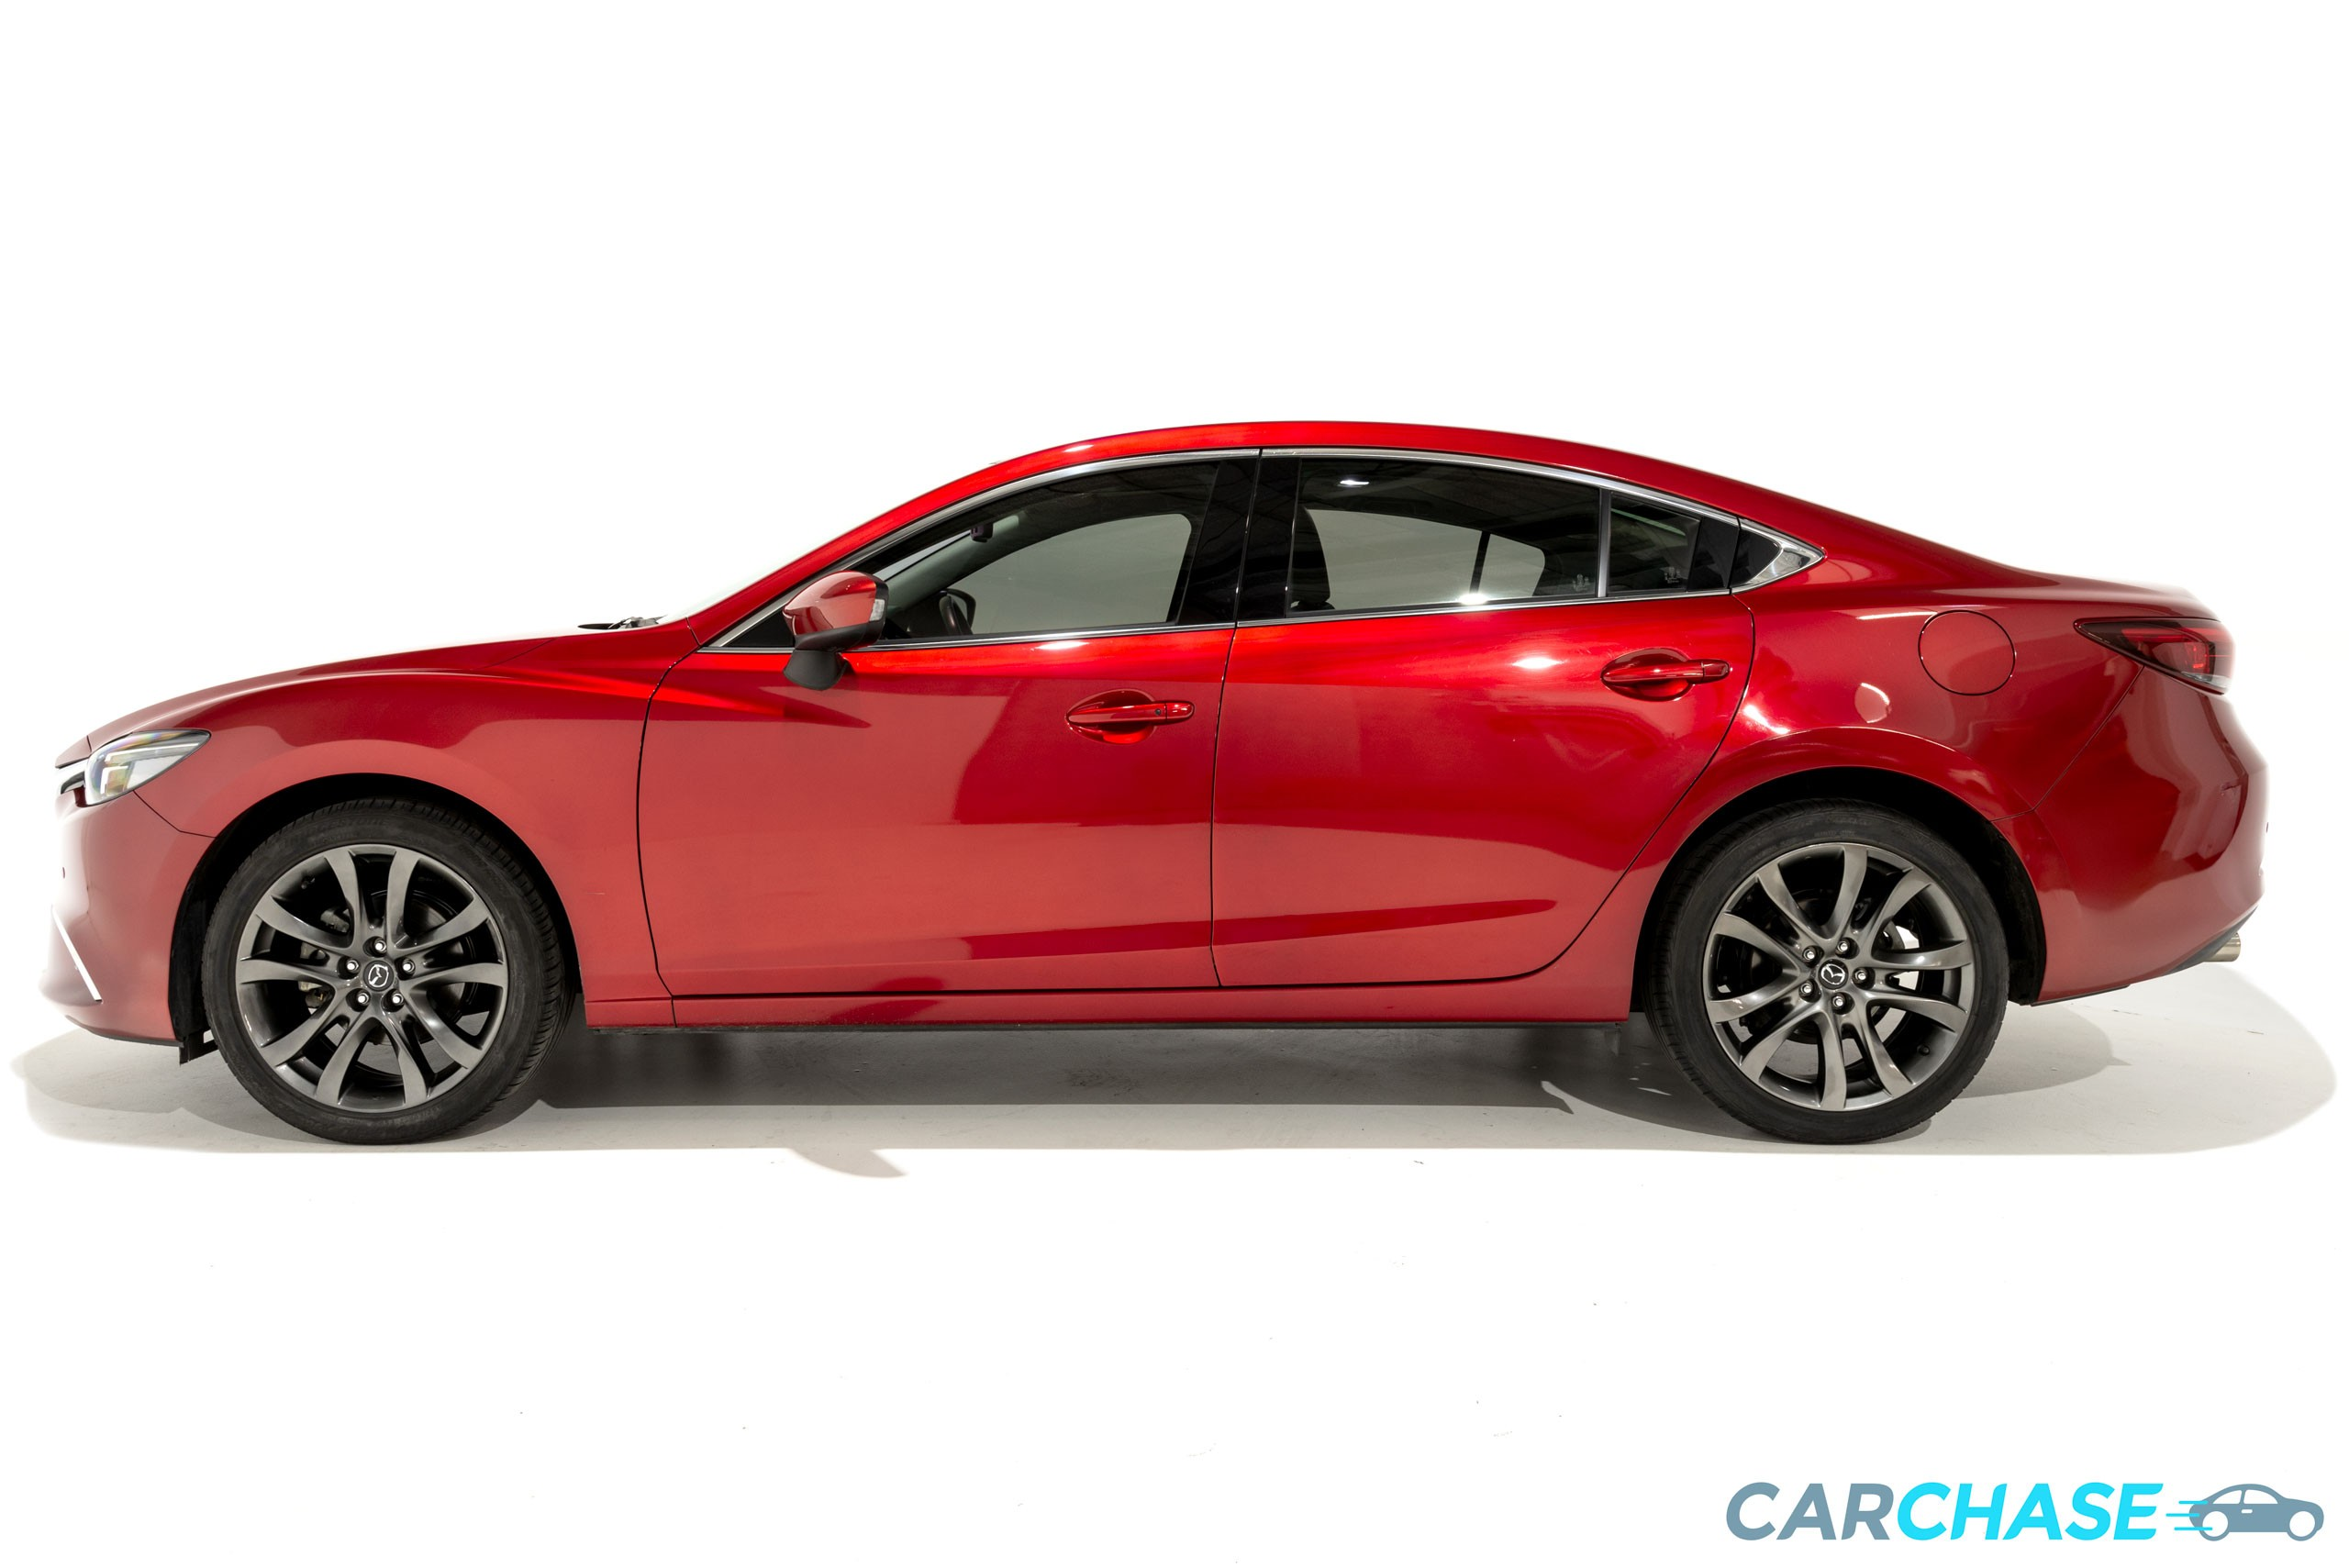 Image of left profile of 2015 Mazda 6 Atenza